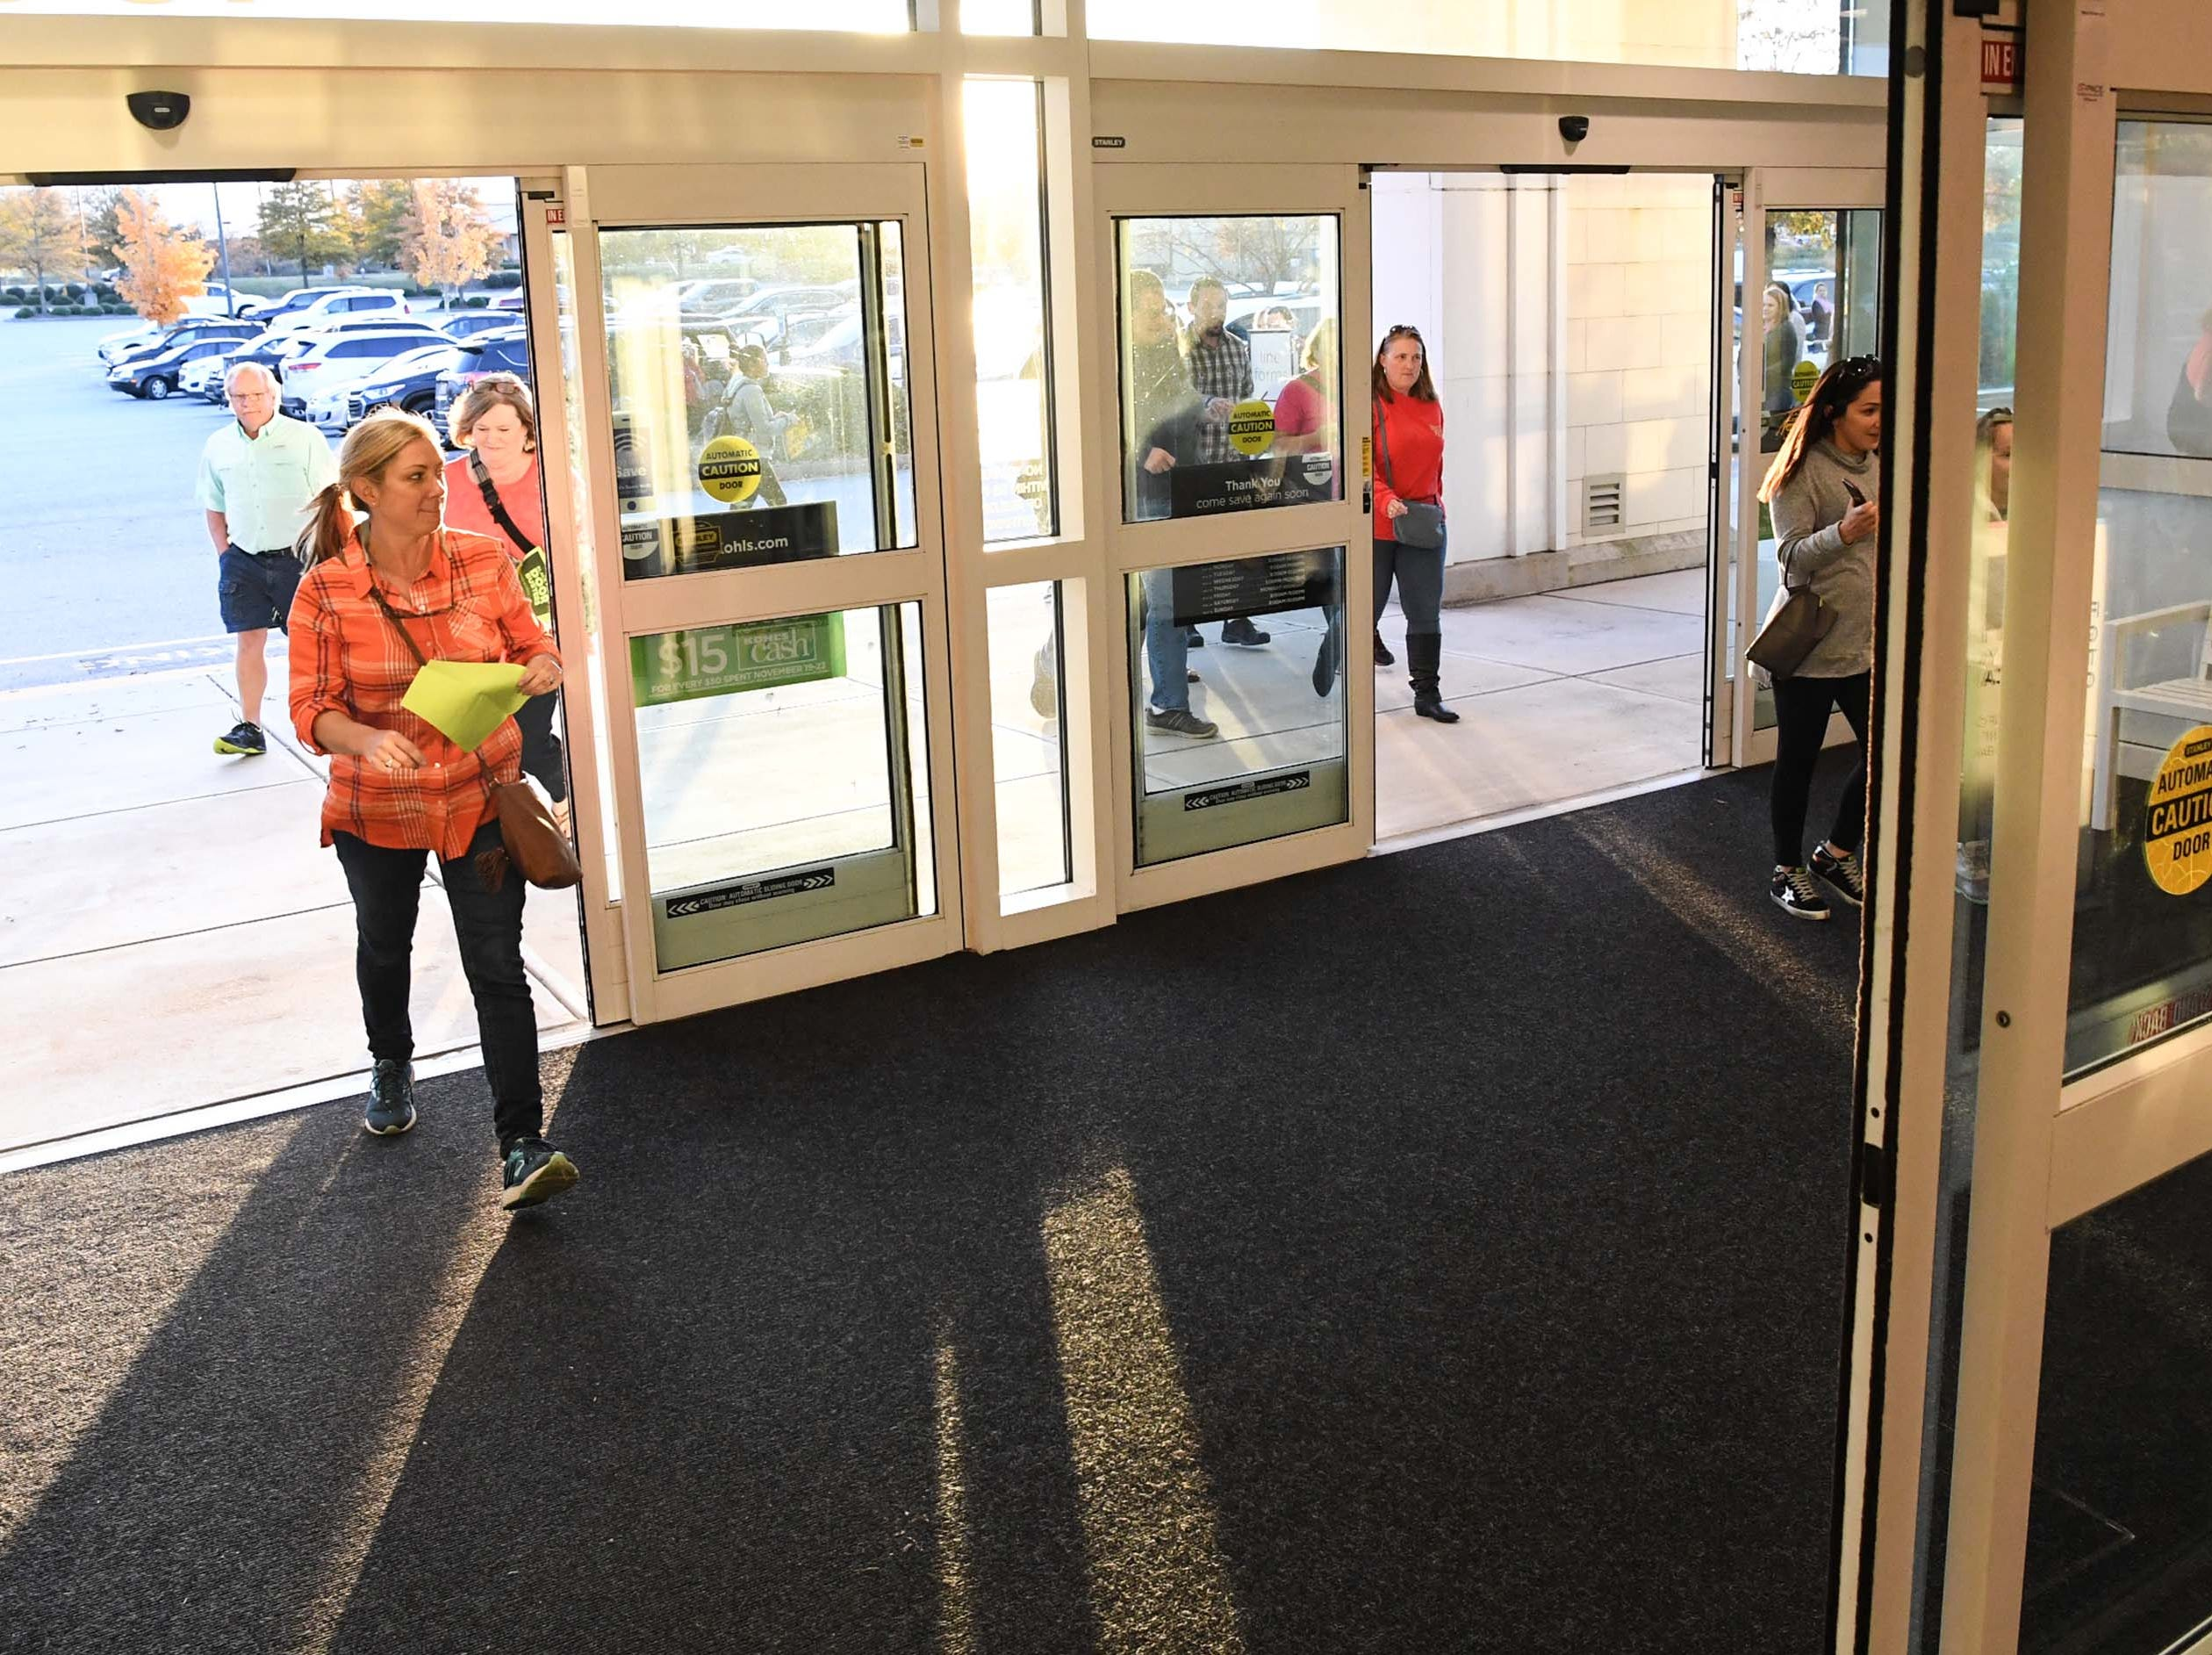 Sunny Davis, left, and Victoria Bonnette walk quickly through doors for Black Friday sales at Kohl's in Anderson on Thanksgiving Day, Thursday, November 22, 2018.